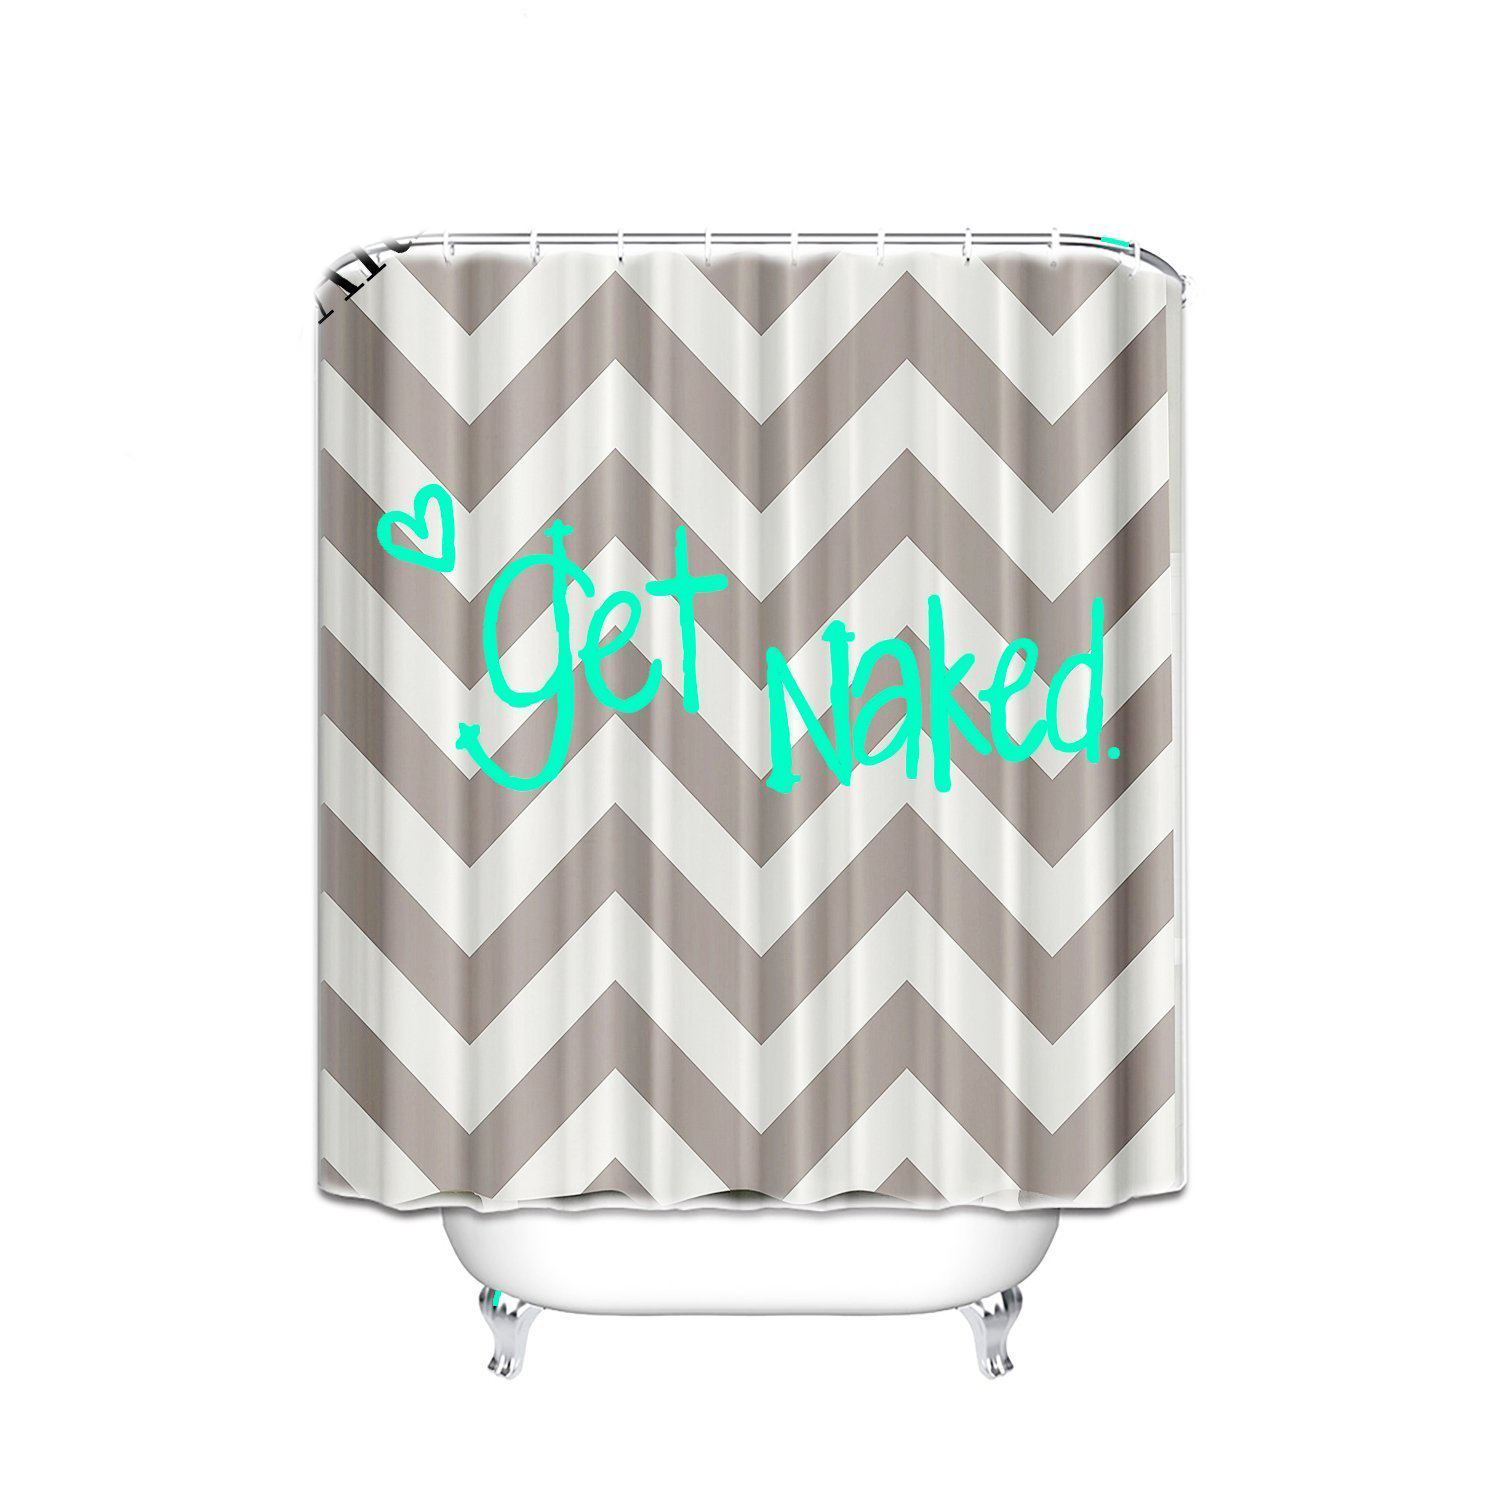 Funny Quotes Chevron Shower Curtain For Bathroom 66 X 72 Get Naked Heart Design Home Accessories Waterproof